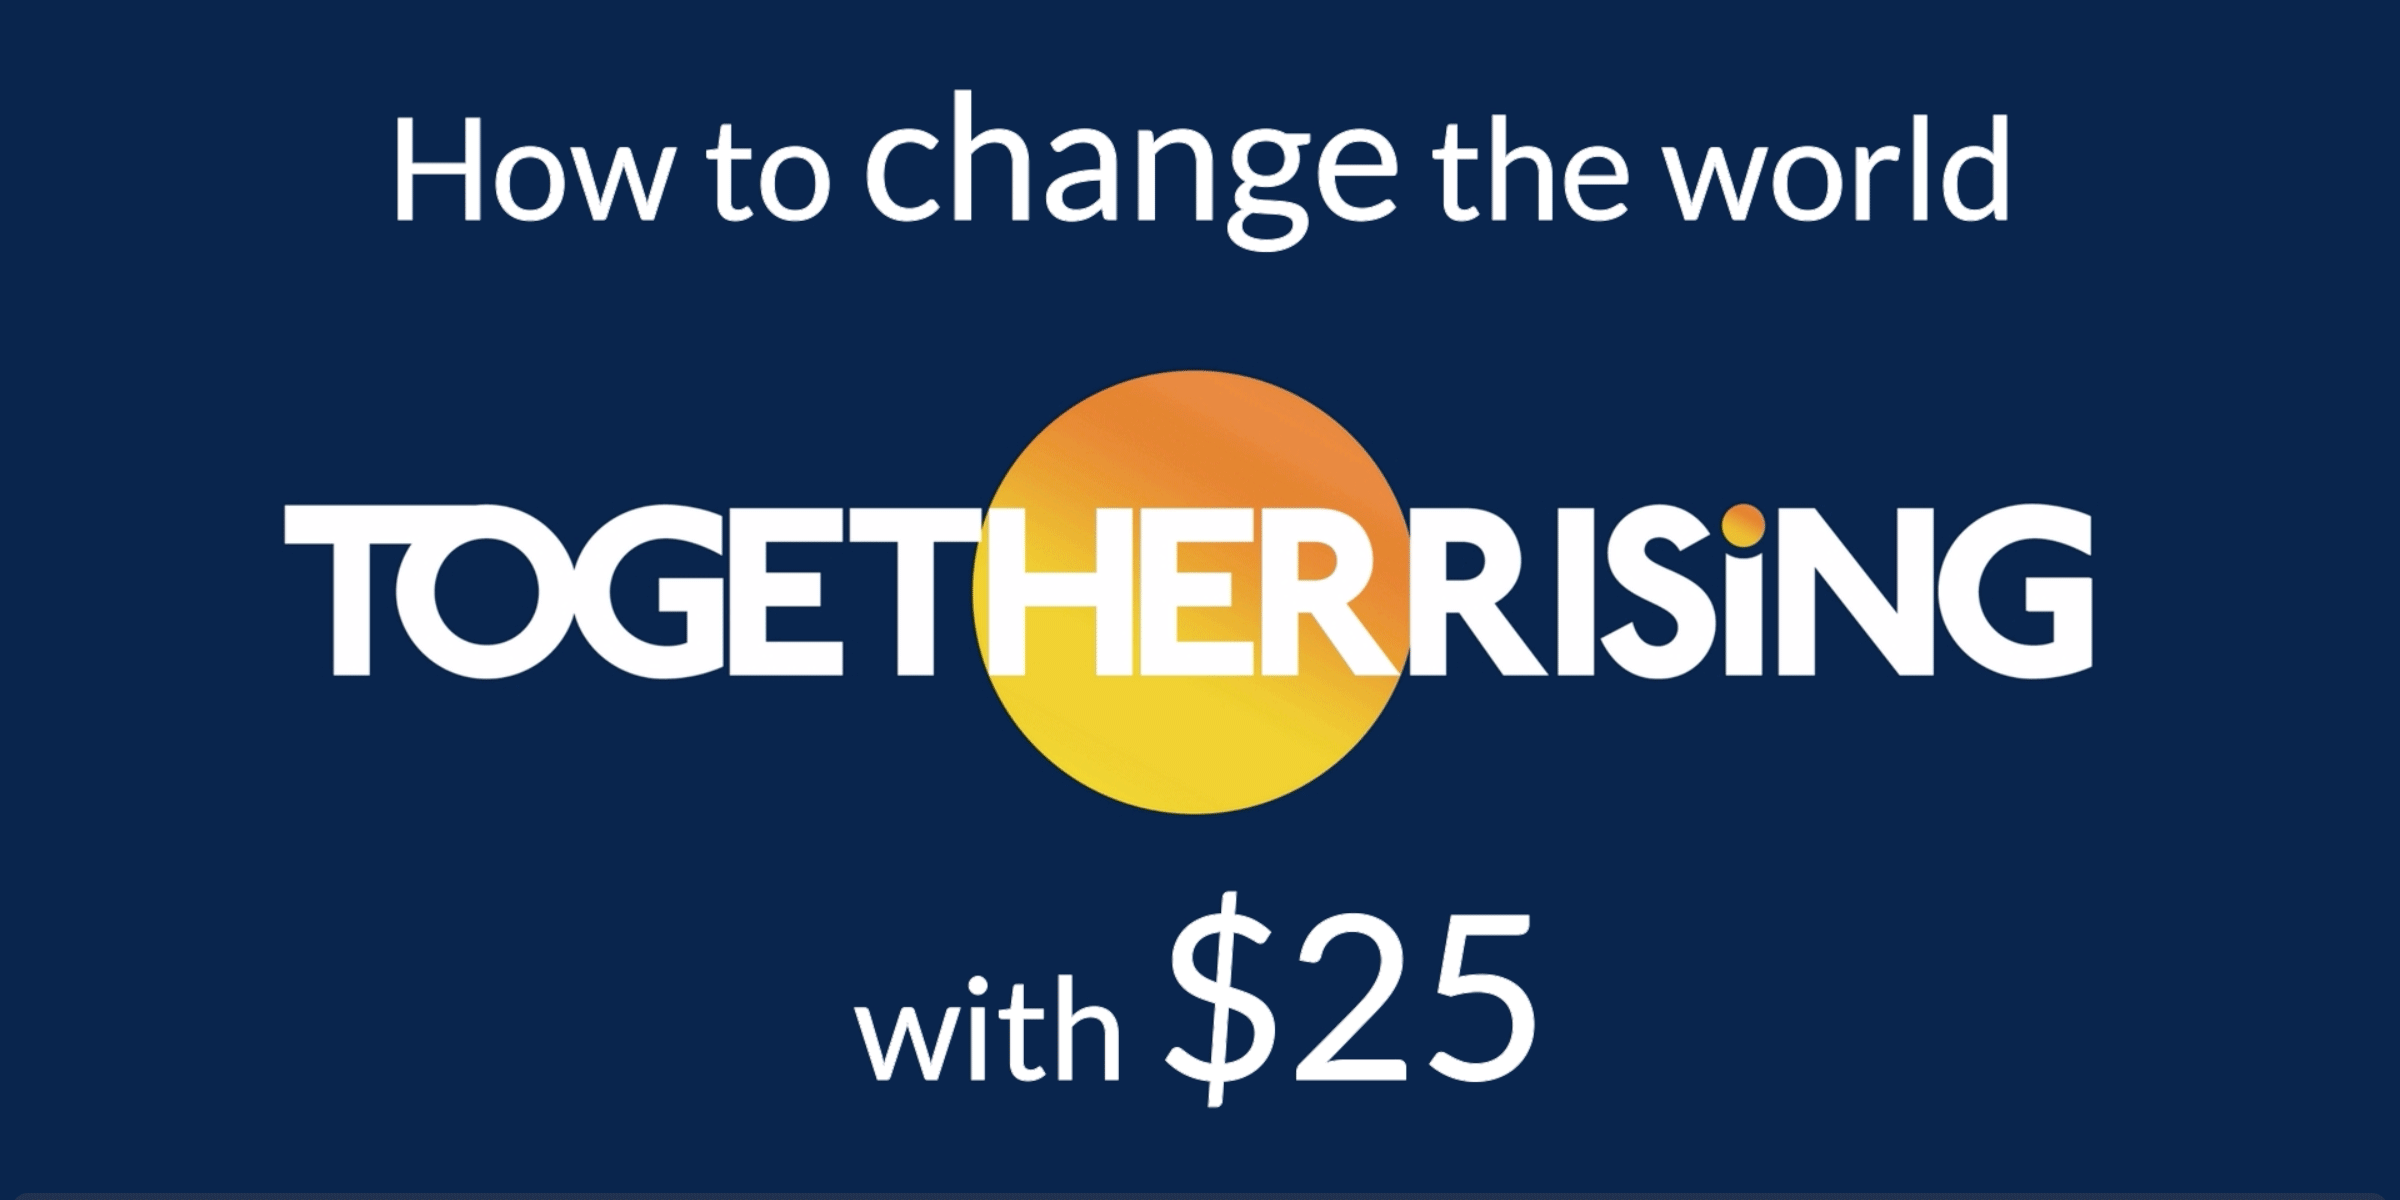 Nominee Together Rising: How to change the world with $25